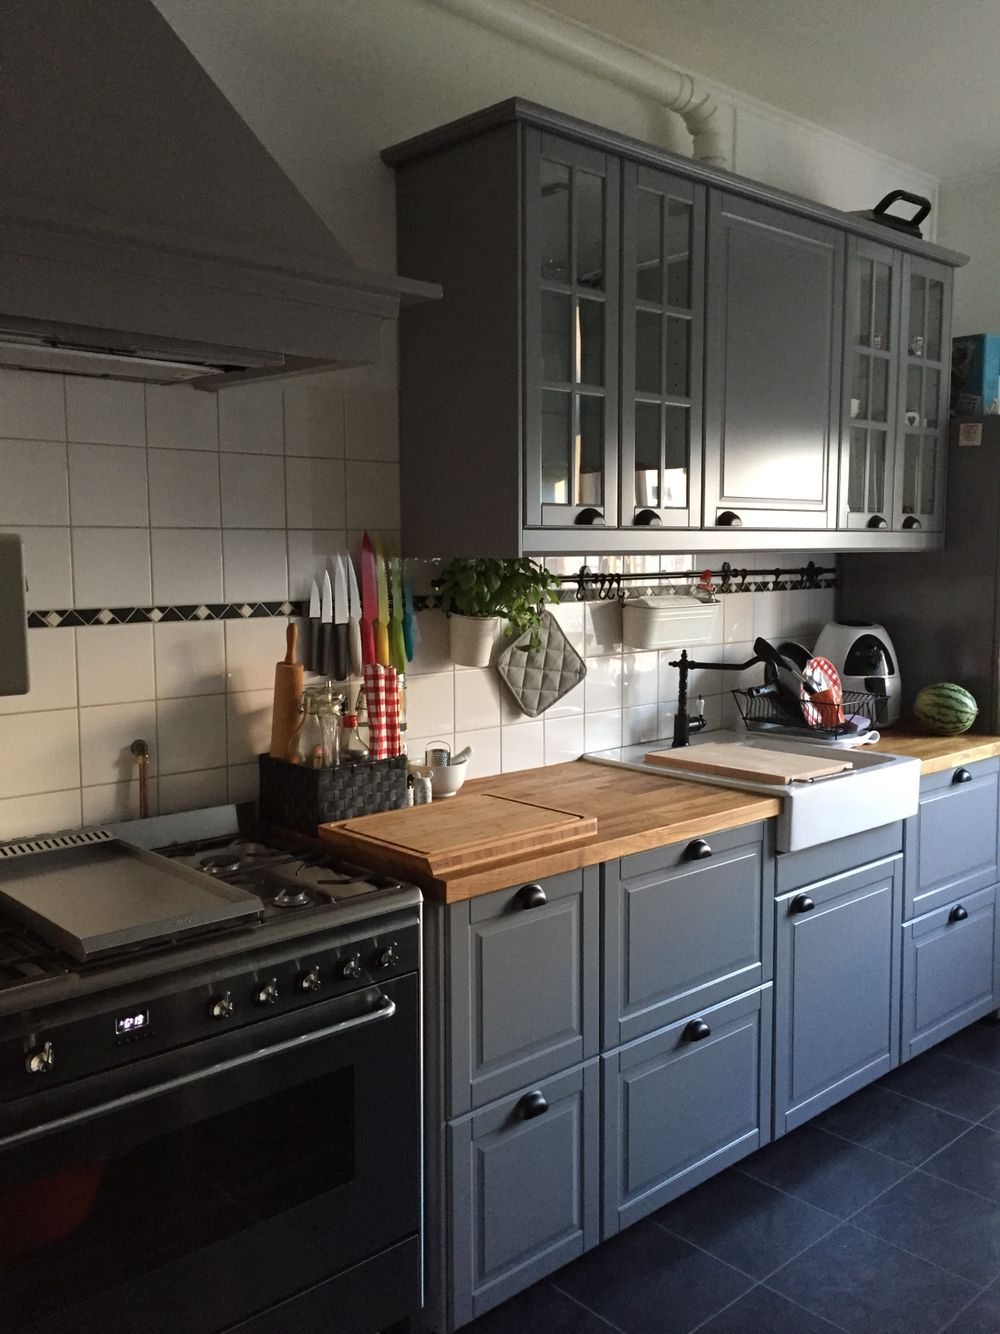 our new ikea kitchen bodbyn brey with the smeg oven ikea bodbyn pinterest k che ikea. Black Bedroom Furniture Sets. Home Design Ideas